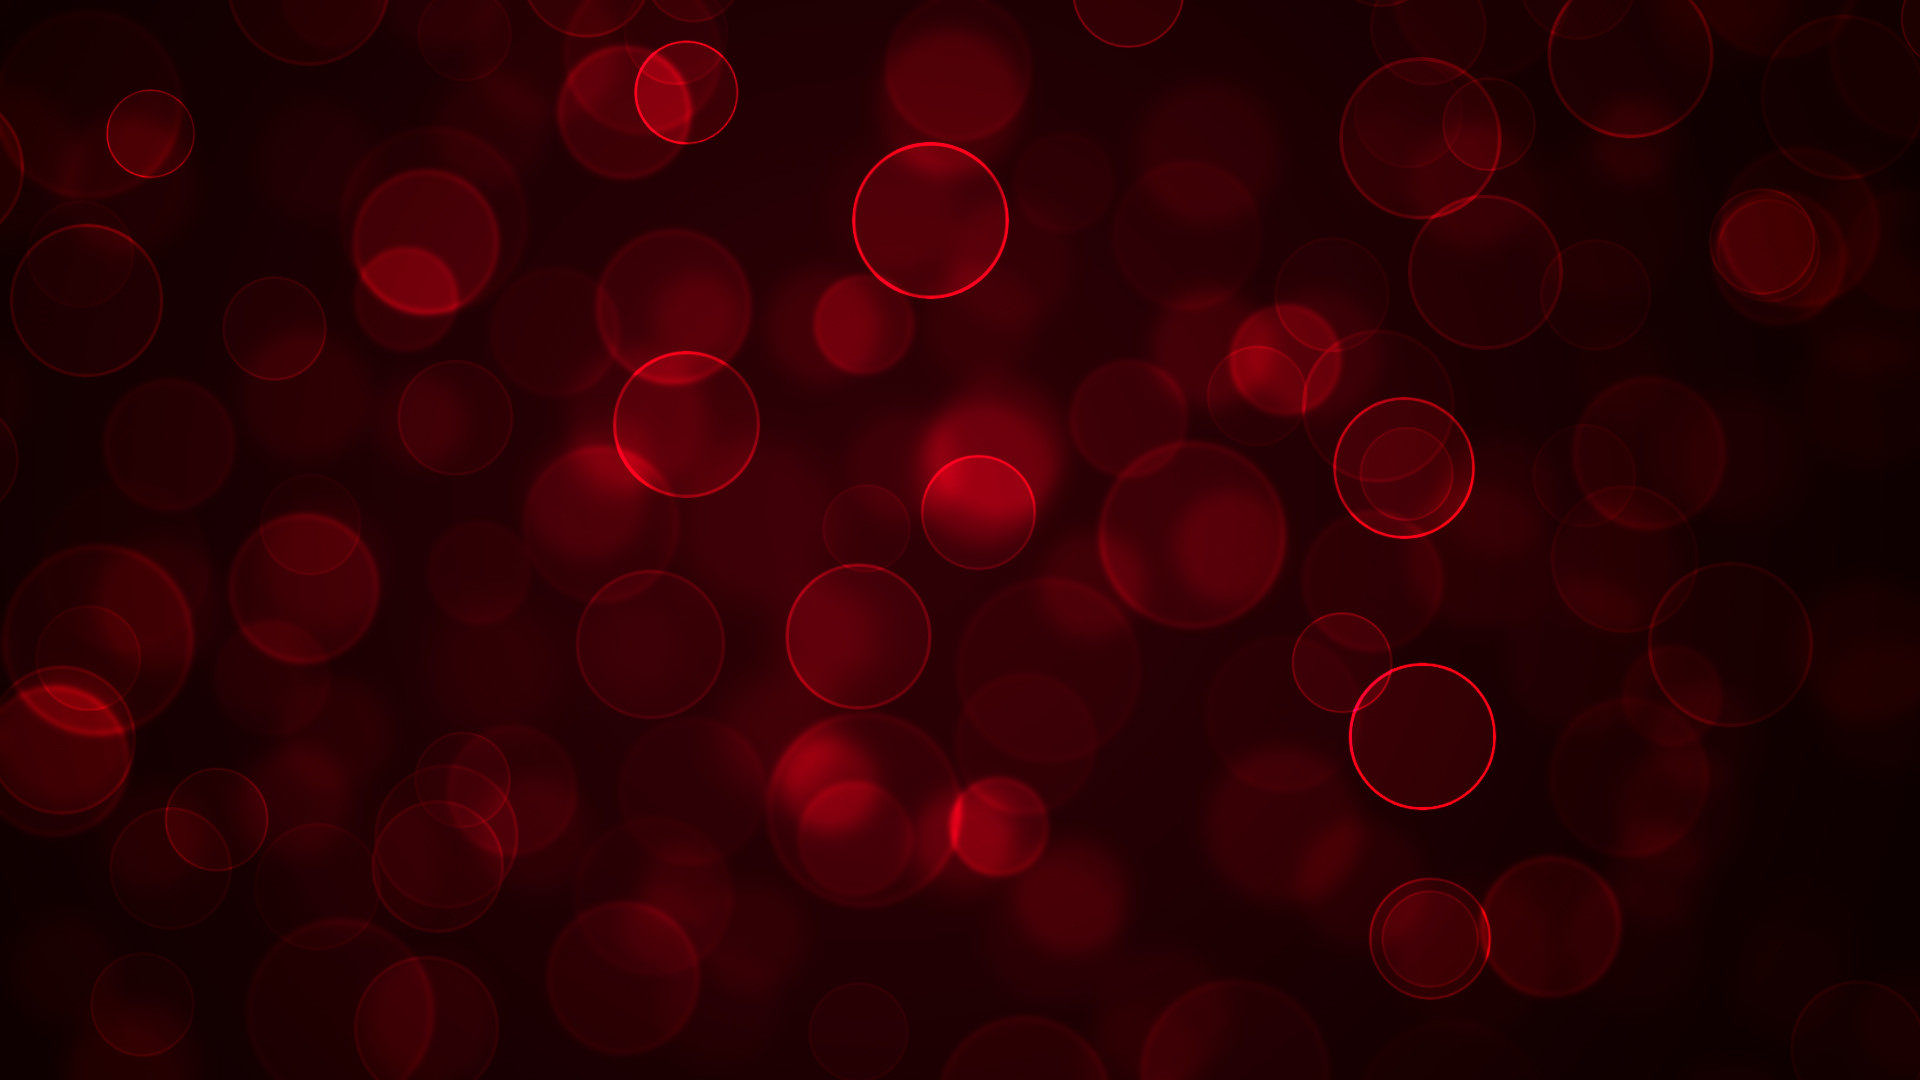 1920x1080 2560x1600 Wallpapers For Dark Red Color Wallpaper